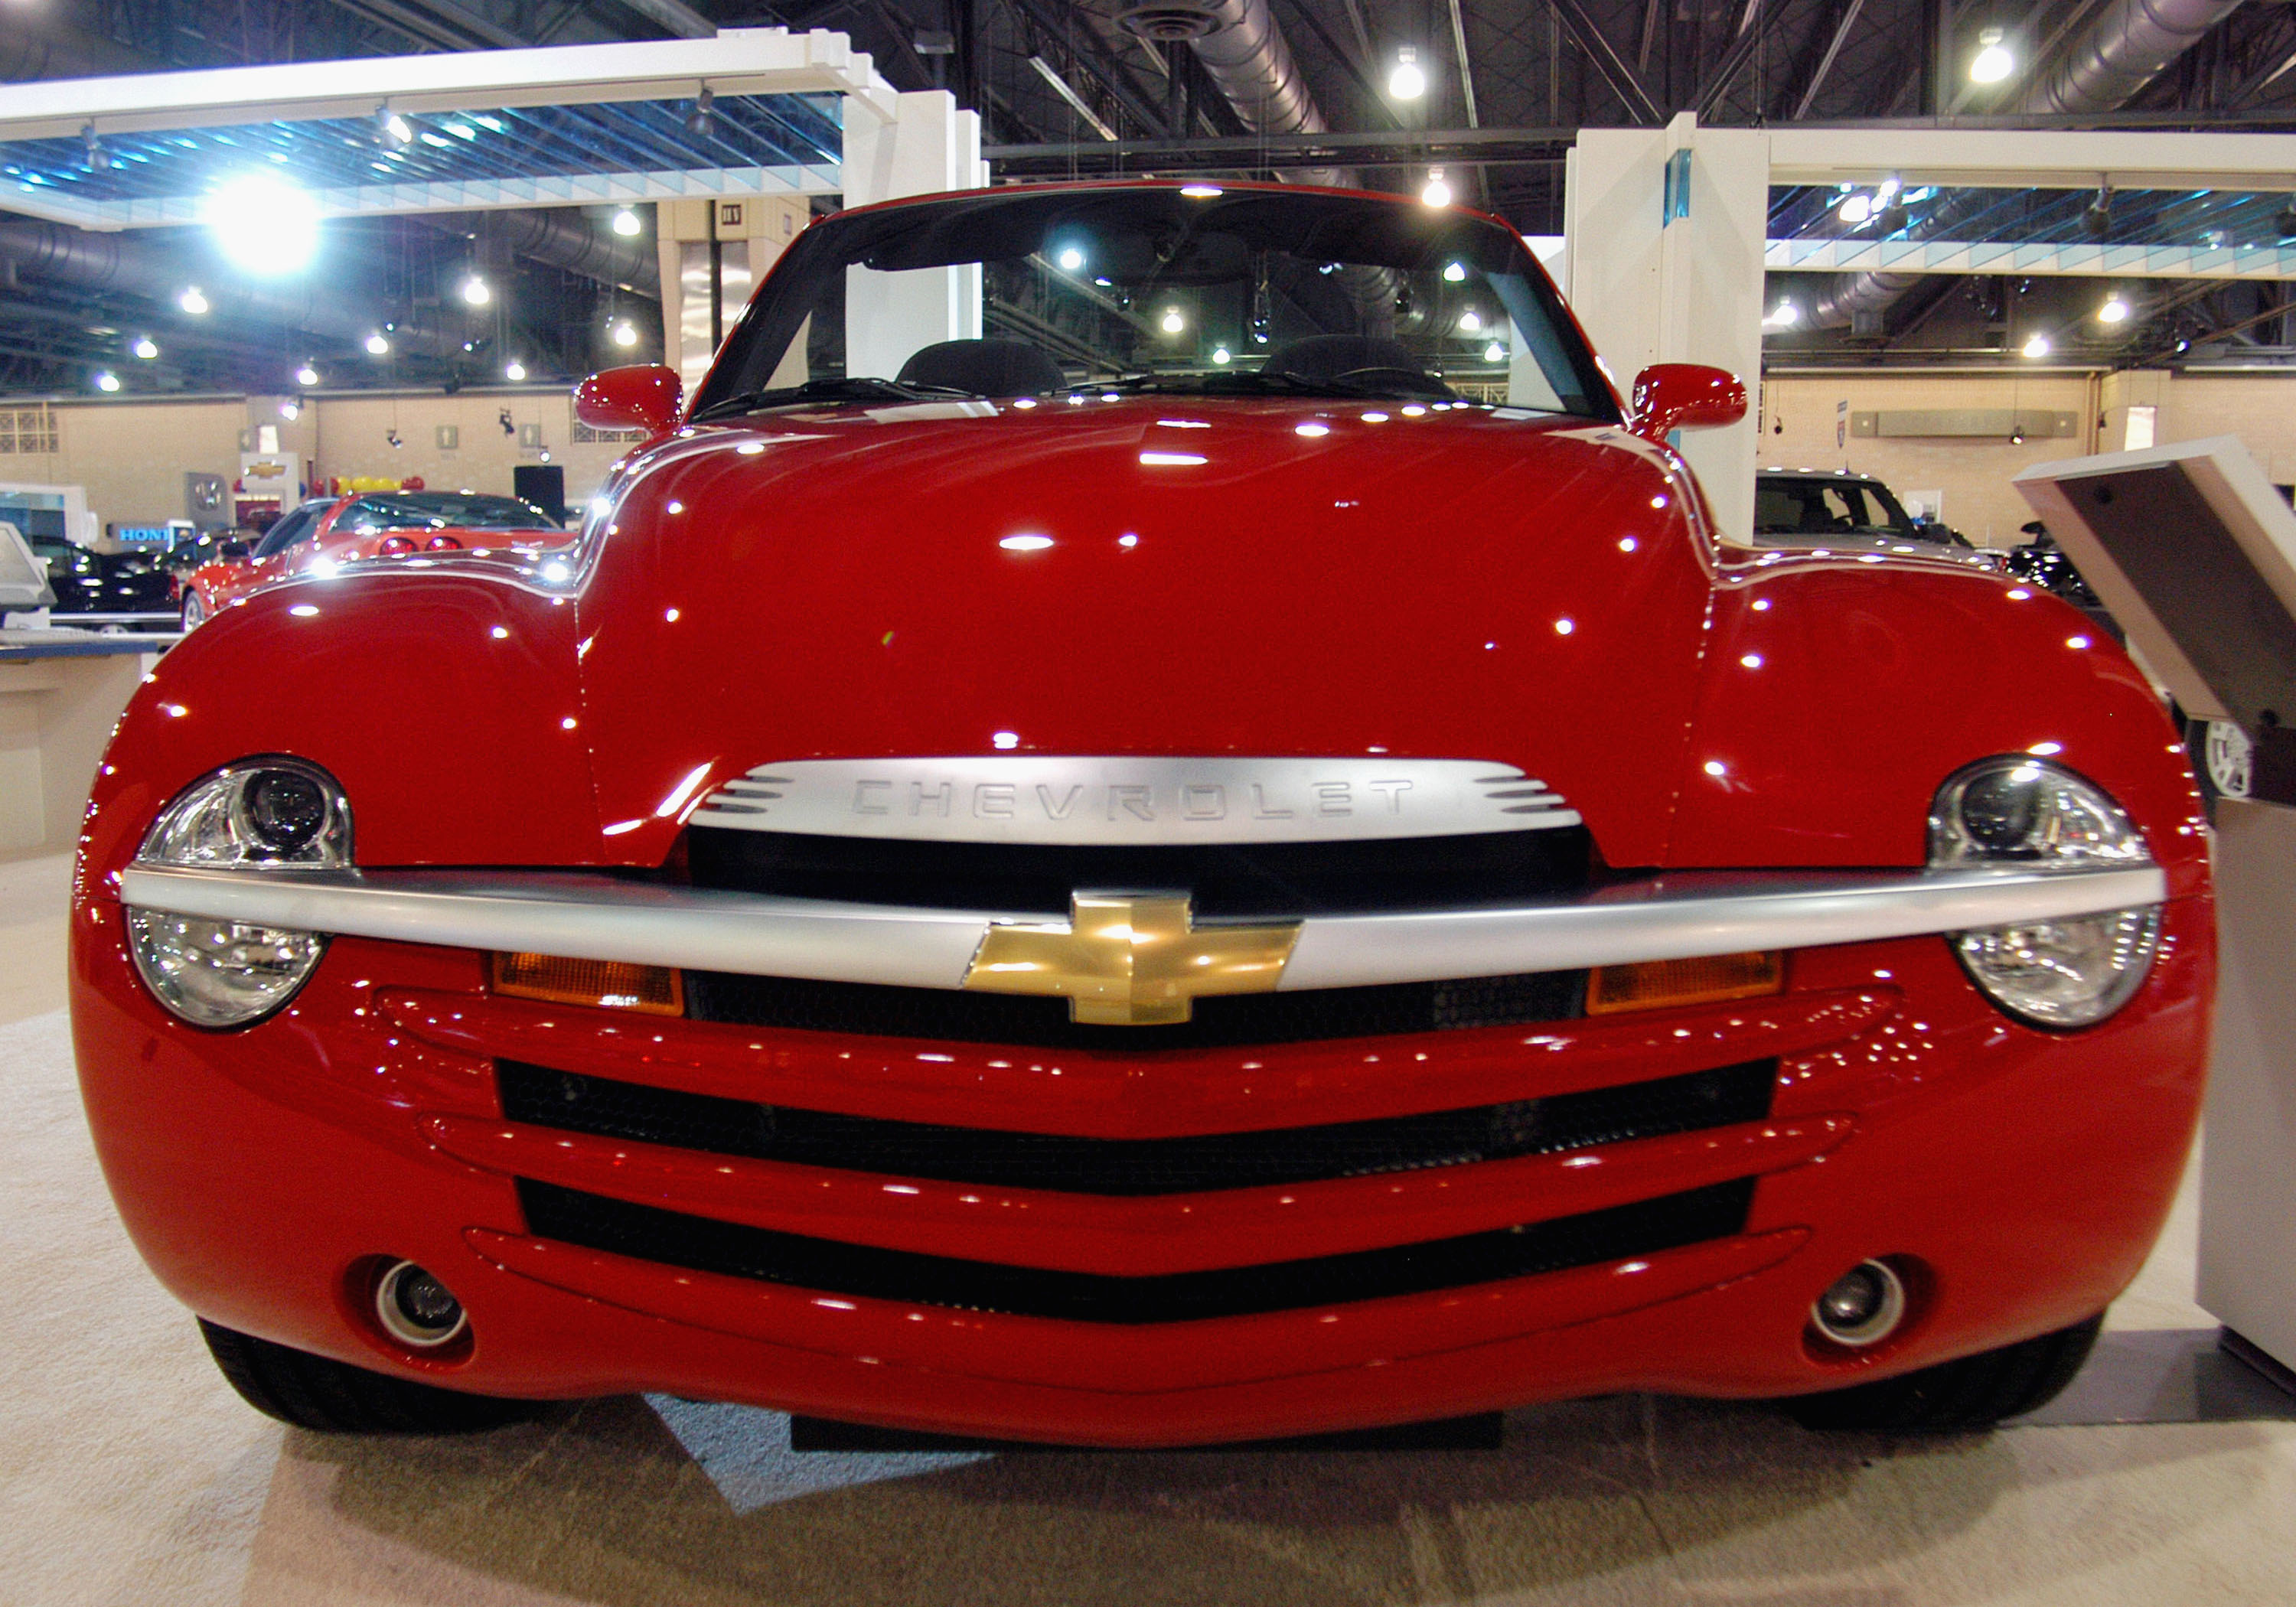 Philadelphia Car Show Revs Up For The Weekend